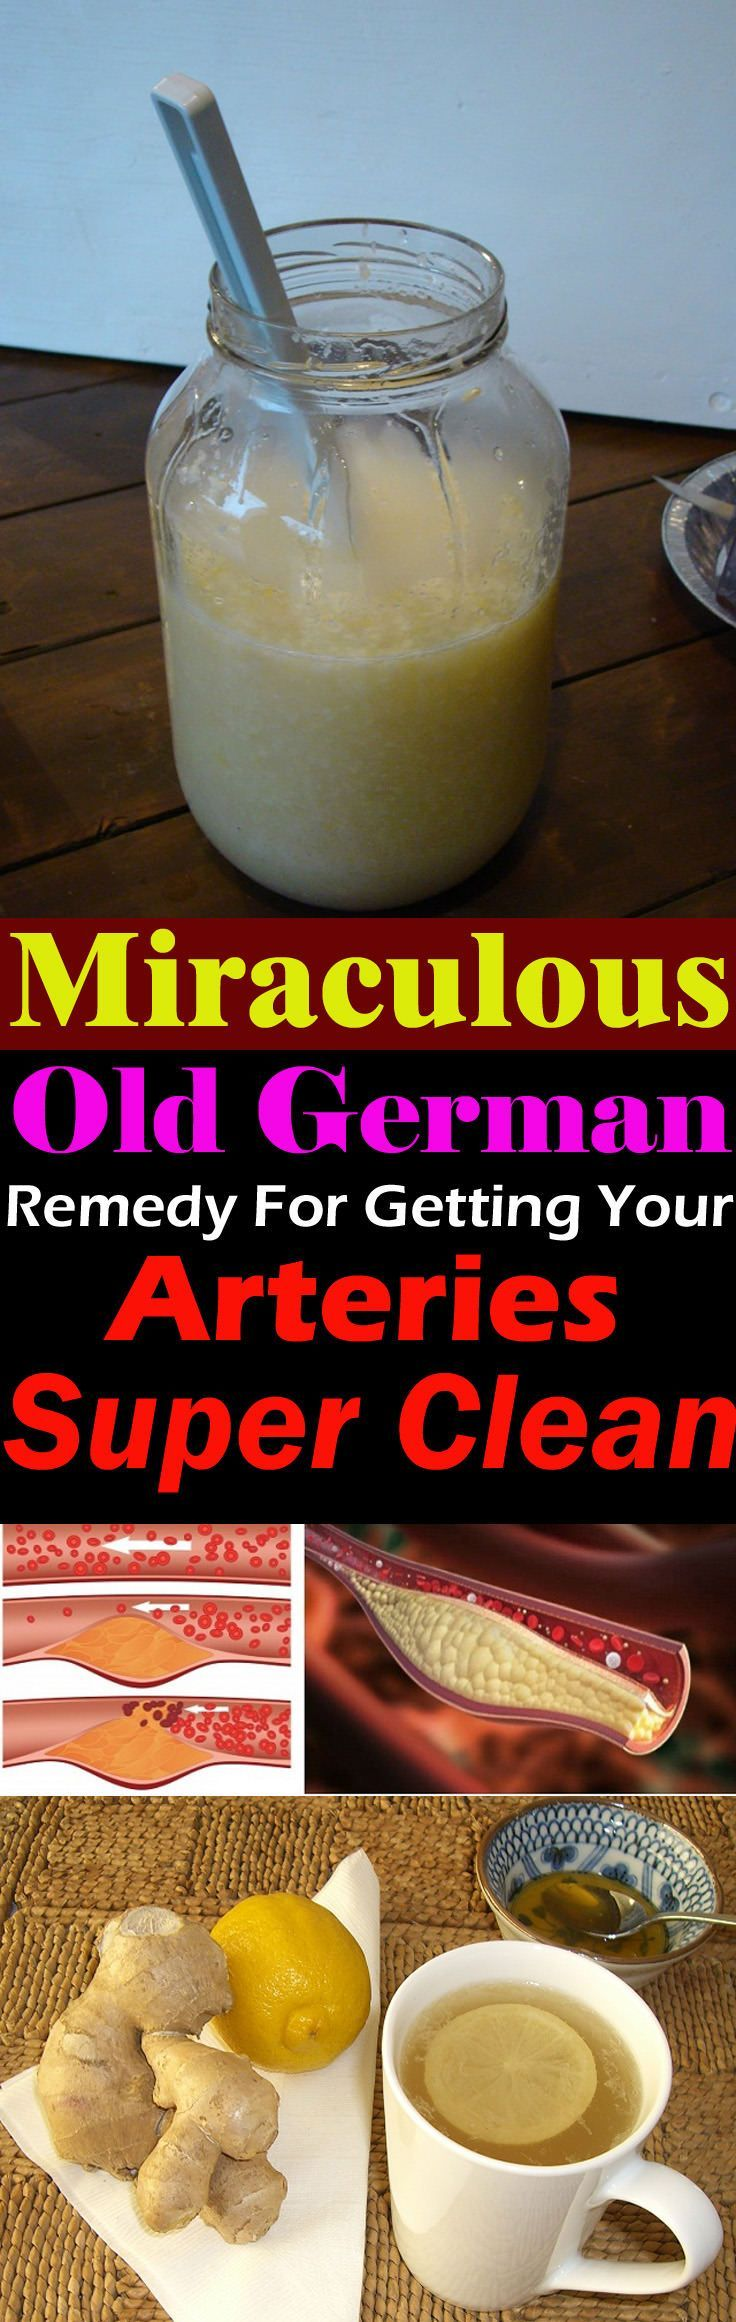 This old German remedy have the power to detoxify your body and cleaning up your arteries if you take it regularly for a few days!